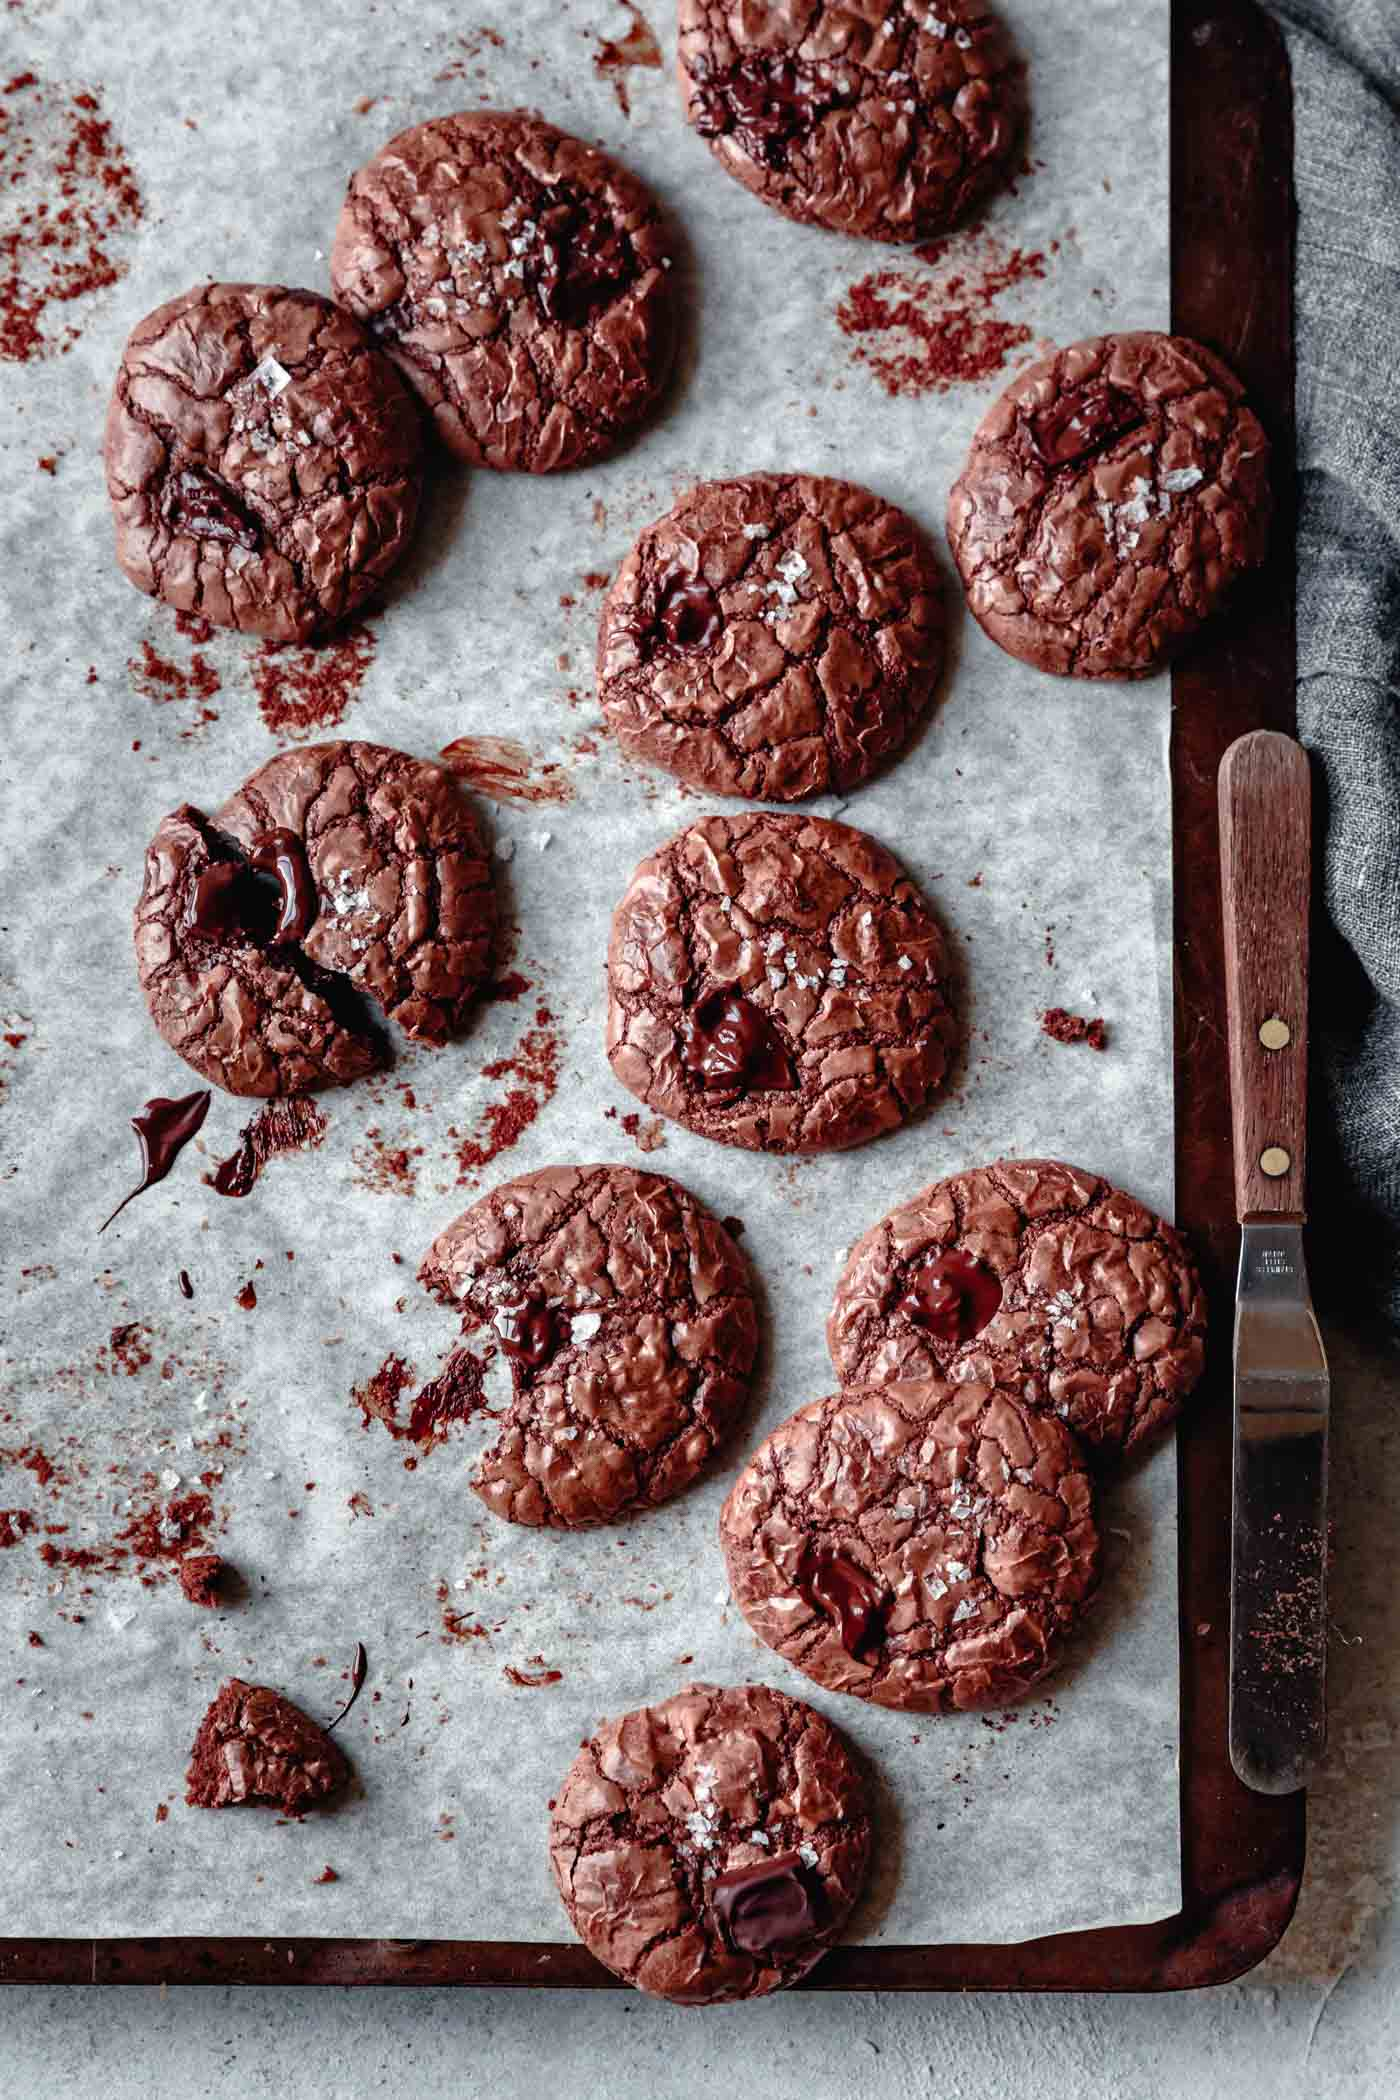 baked gluten-free cookies on a cookie sheet